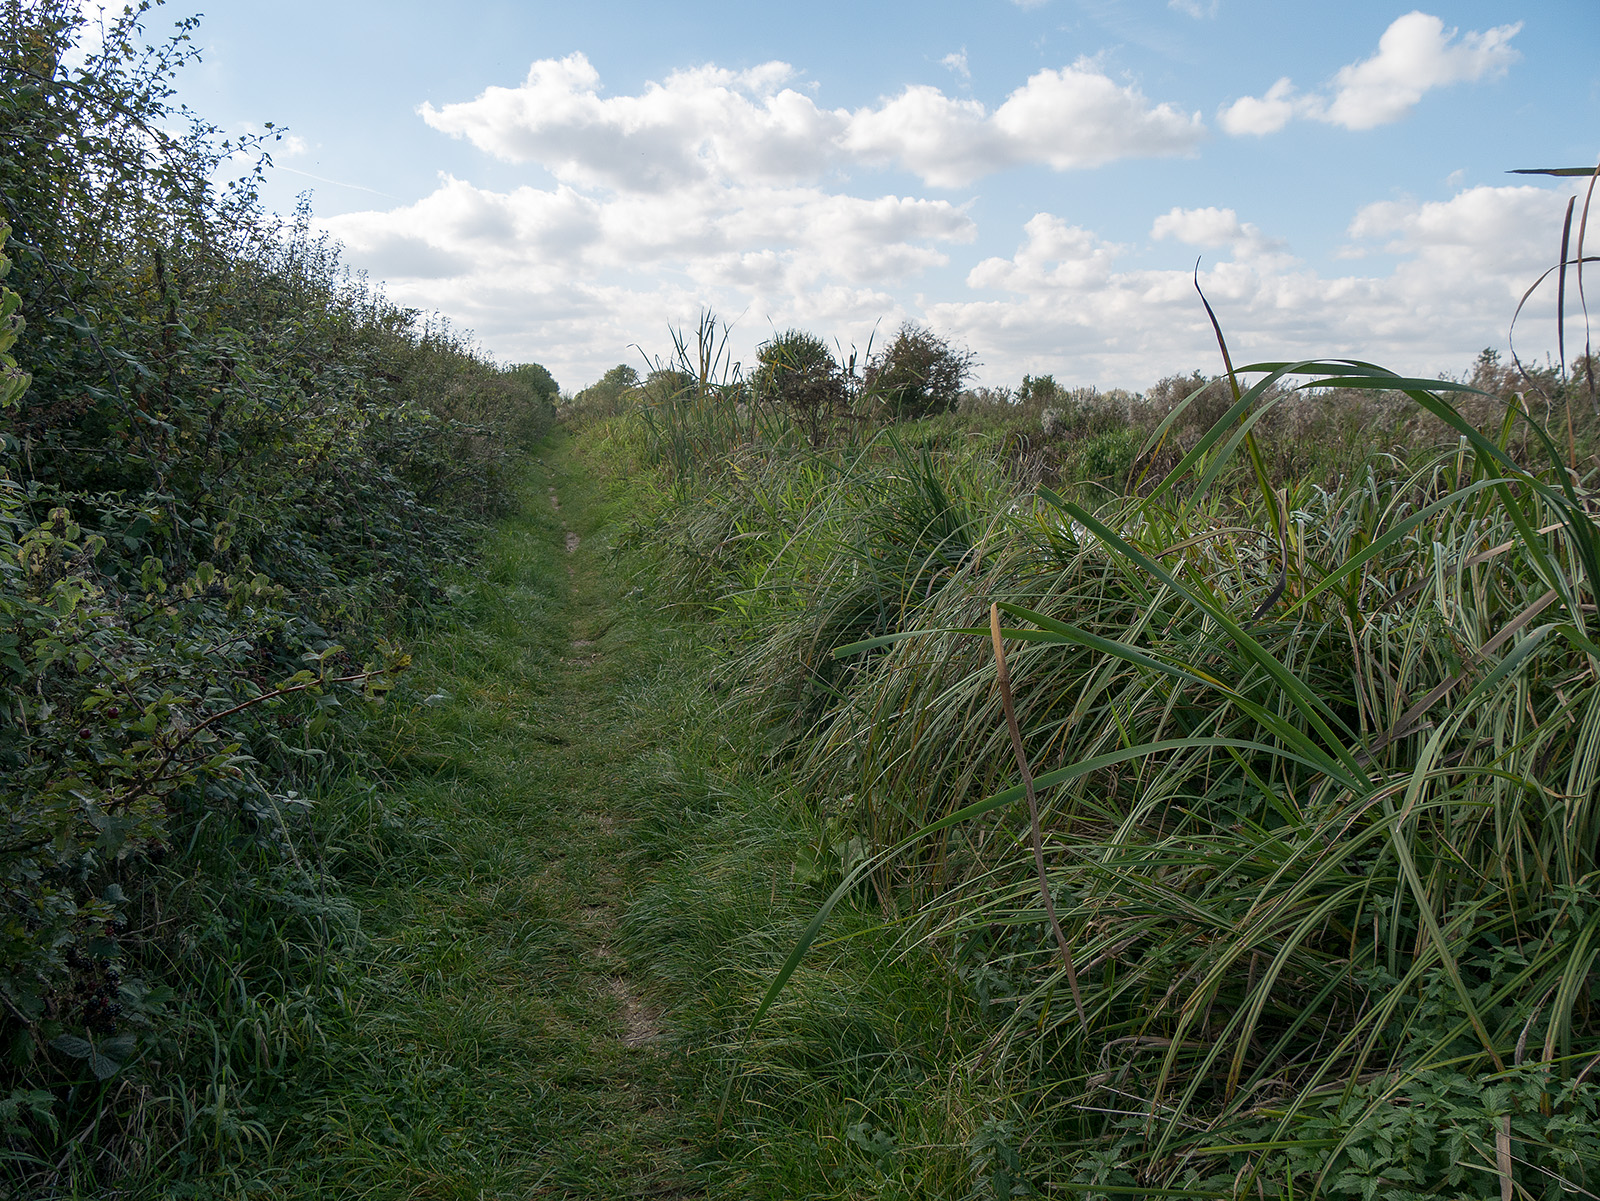 In places, the gravel path gives way to grass and the reeds and hedge overhang a little.